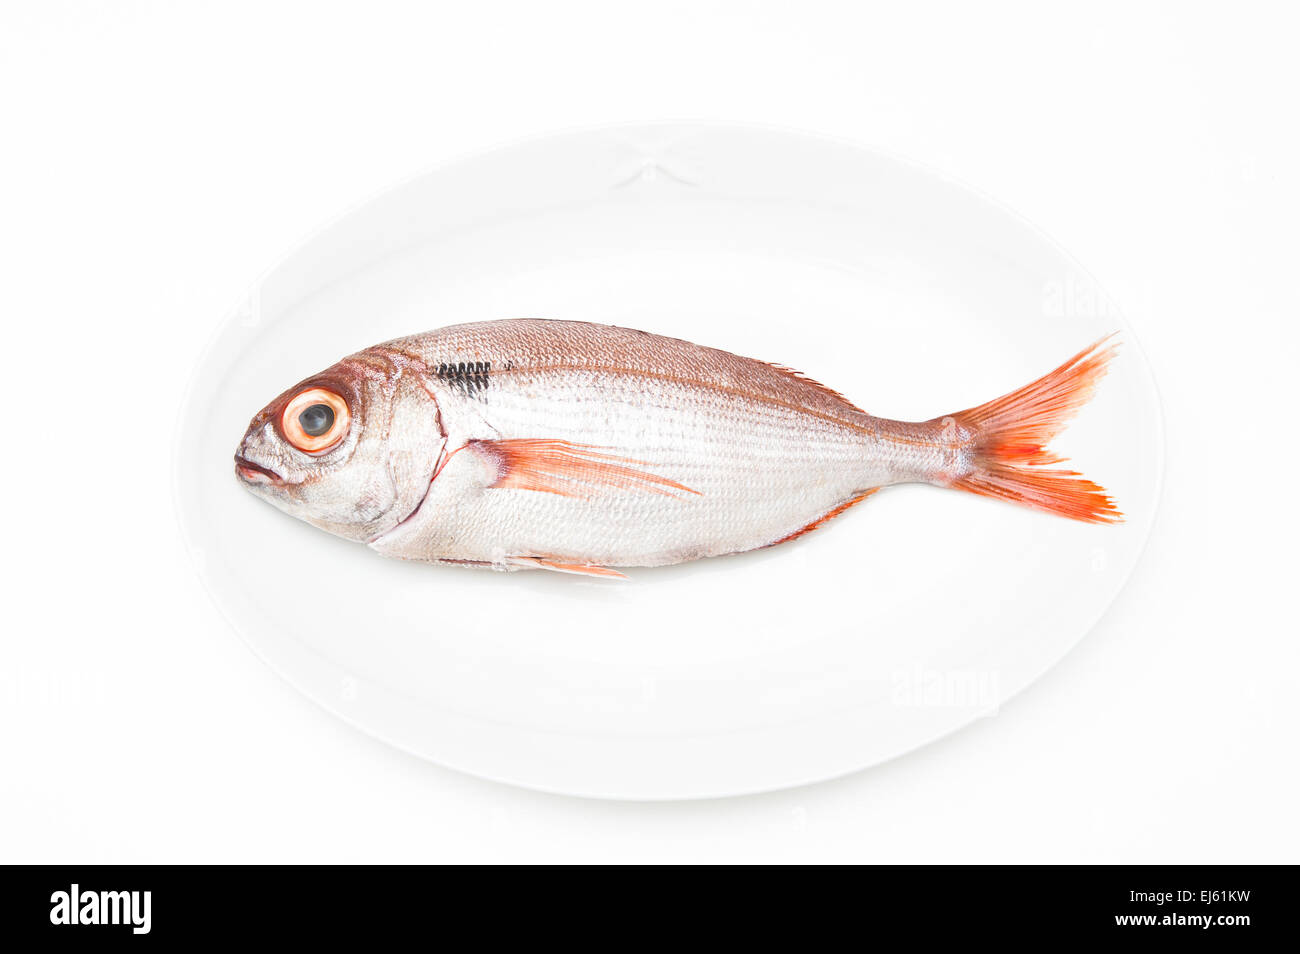 Pezzogna fish, variety of sea bream, on white plate and white background Stock Photo